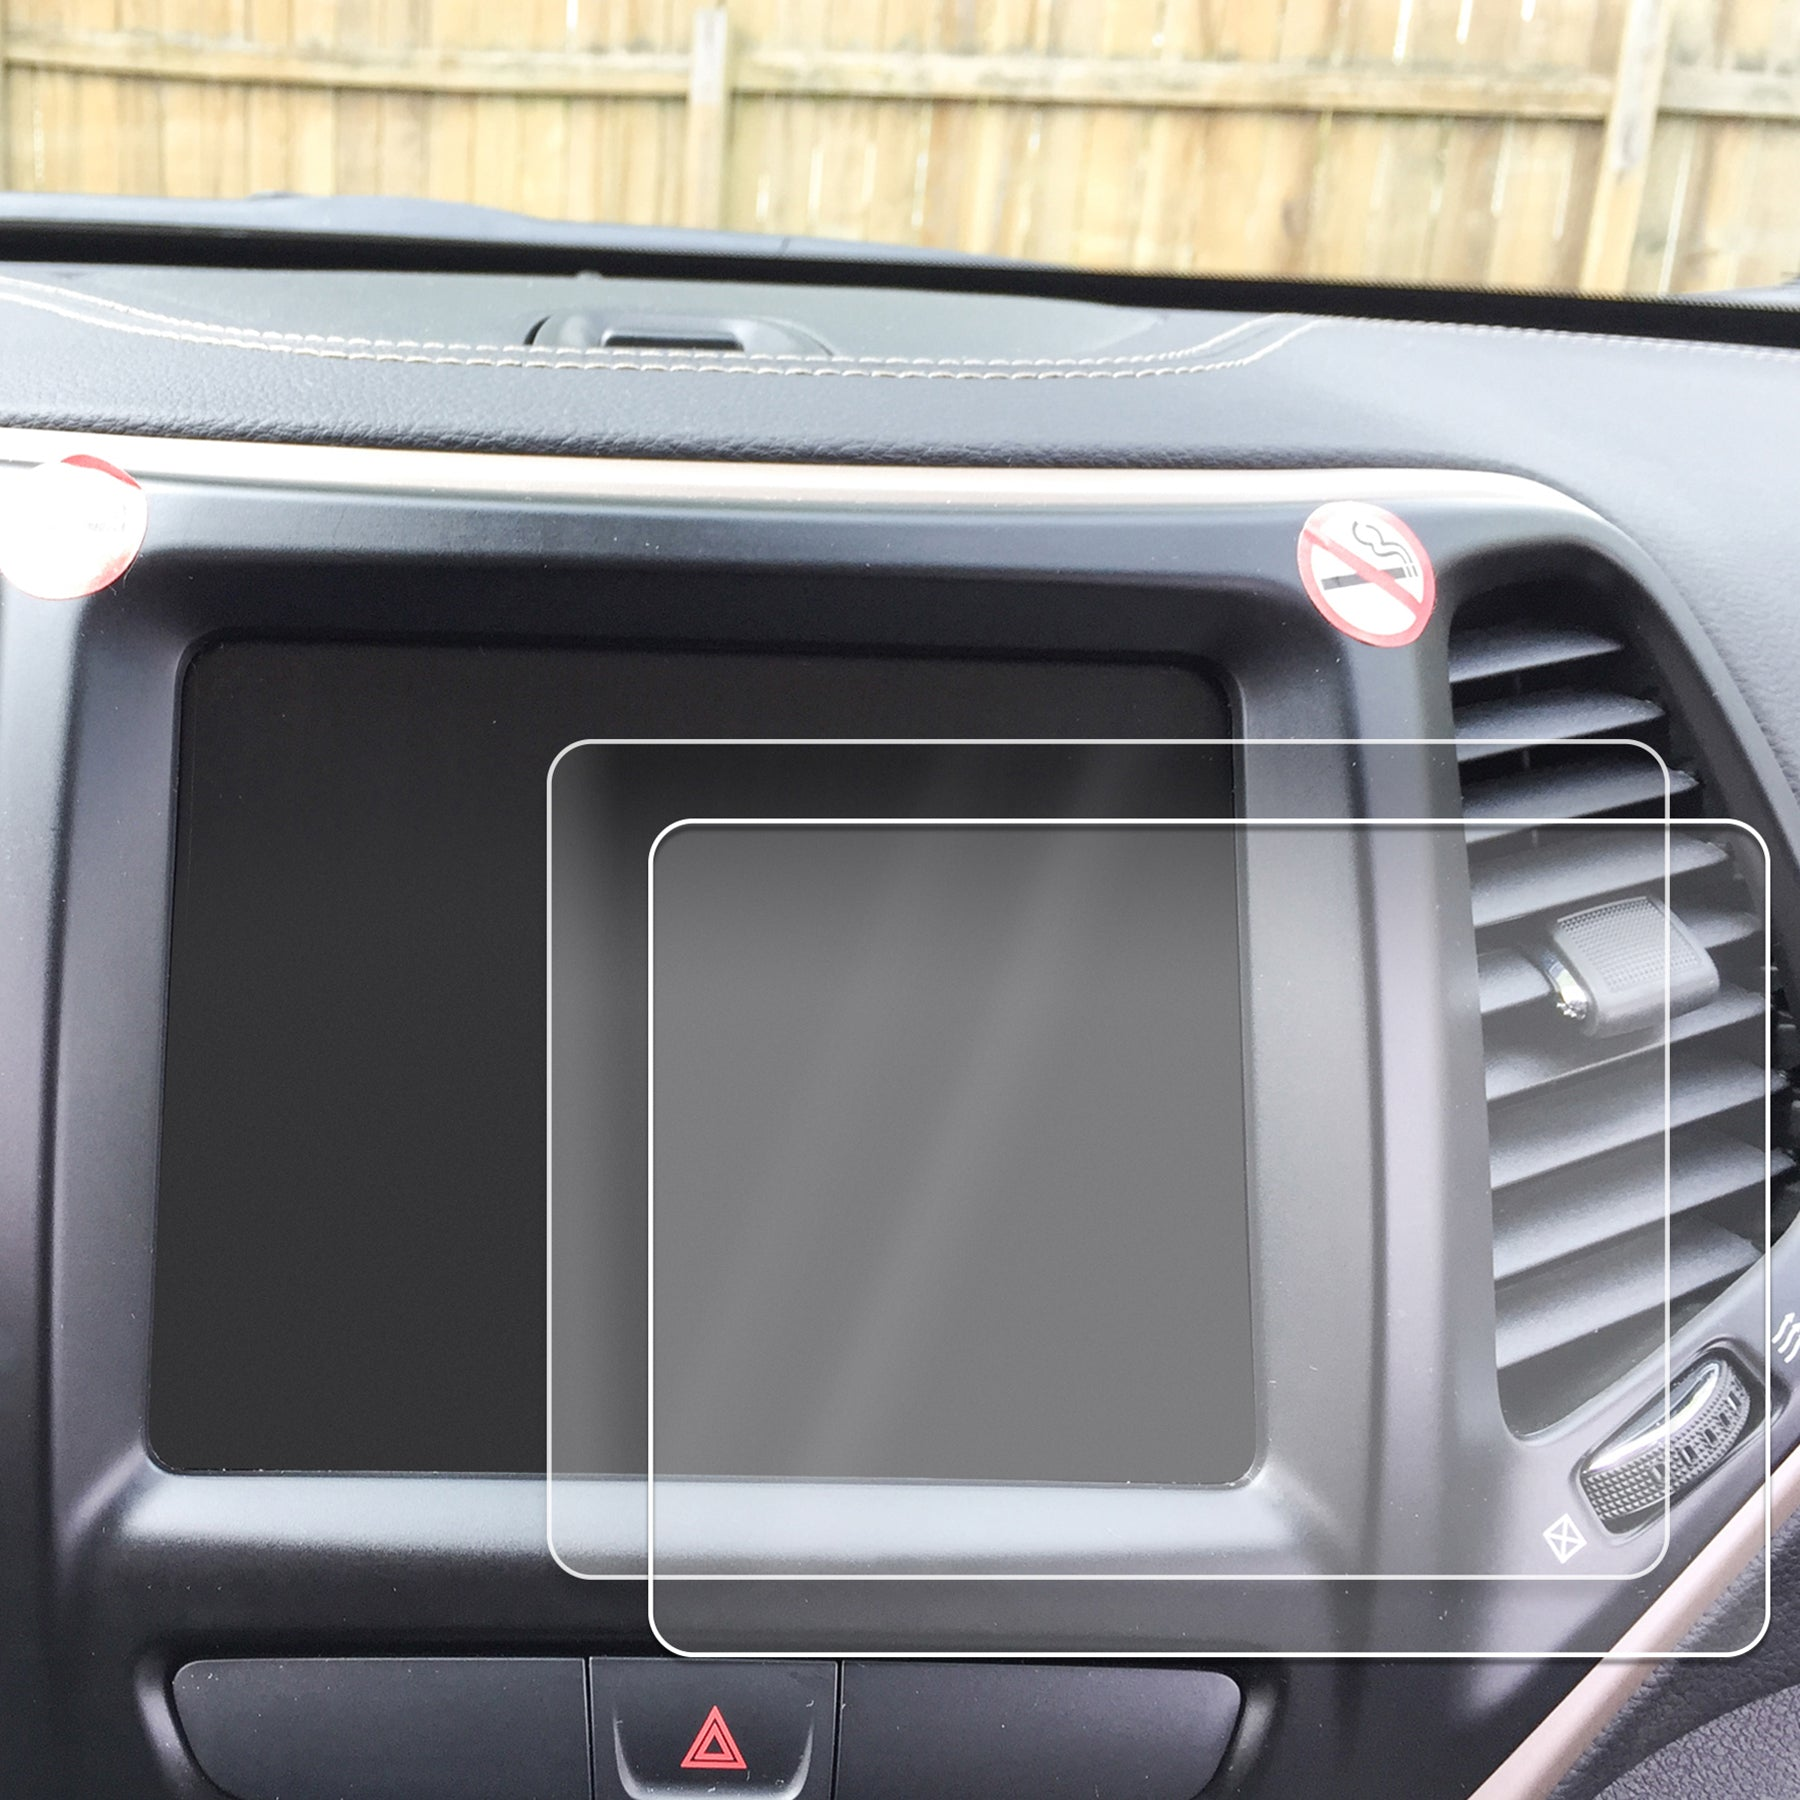 Red Hound Auto Screen Savers 2pc Custom Fit Compatible with 2014-2019 Jeep Cherokee U Connect Invisible High Clarity Touch Display Protector Minimizes Fingerprinting 8.4 Inch